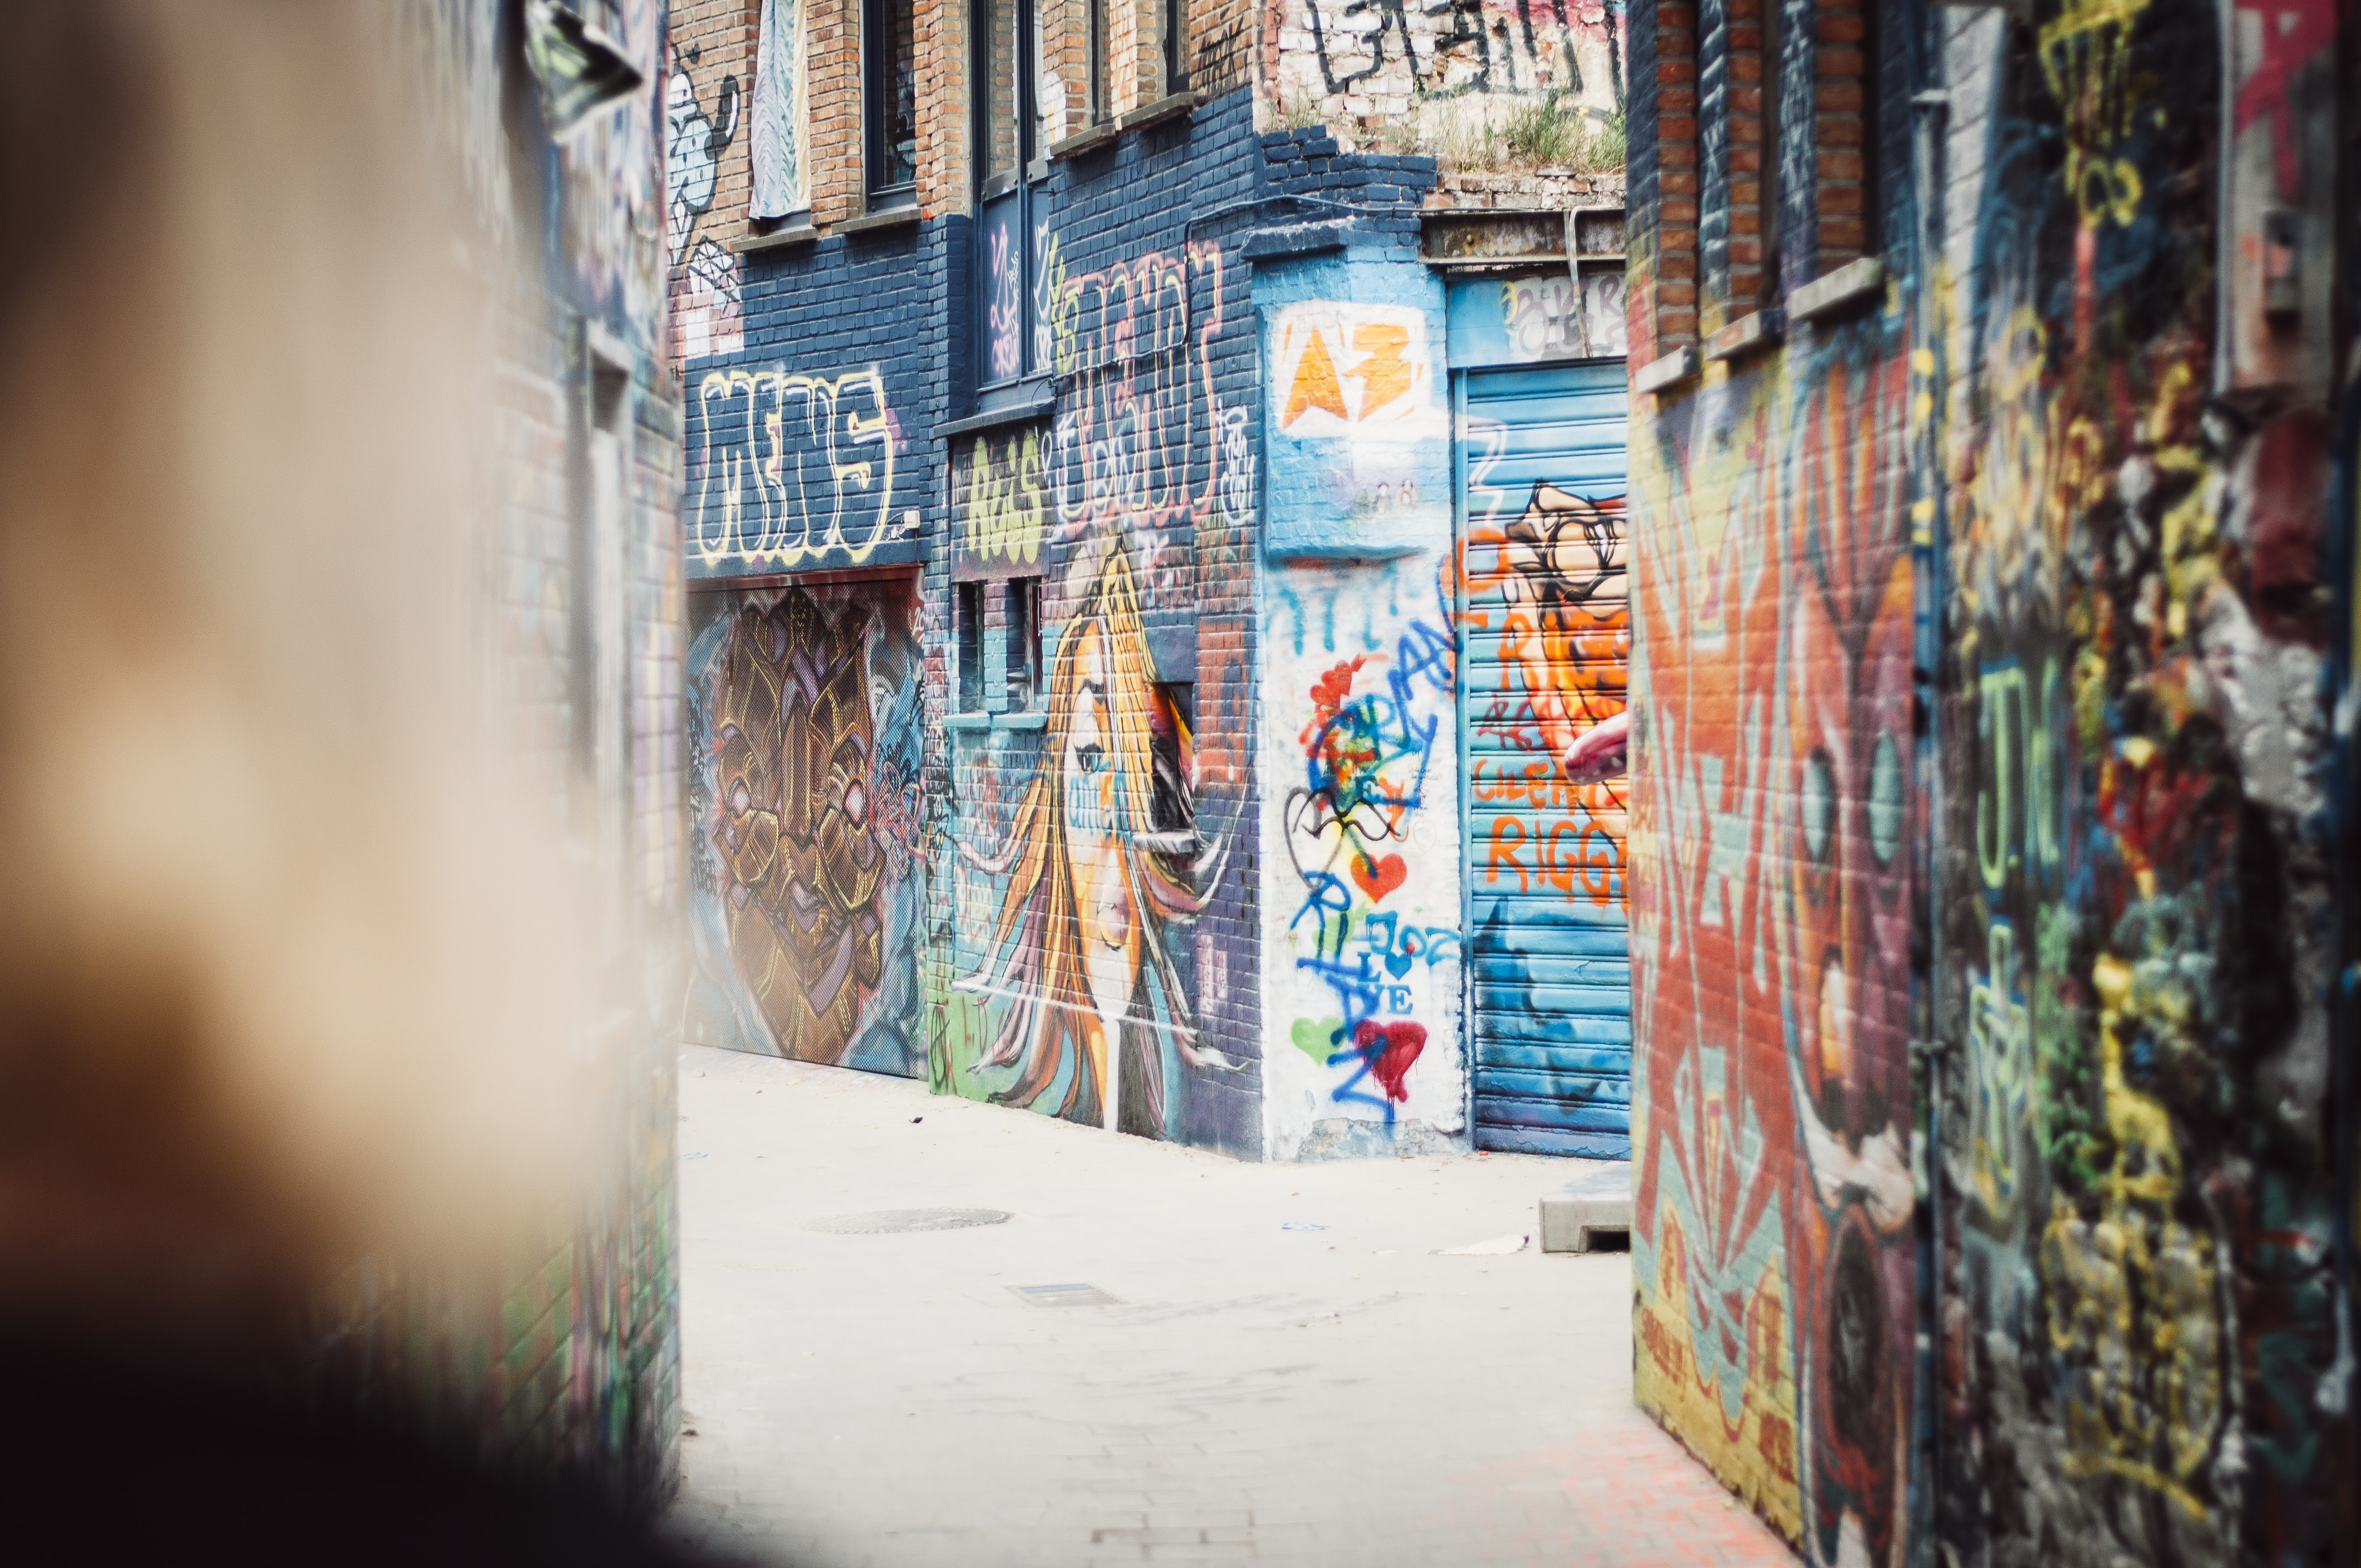 An empty alley in Ghent with its walls covered in colorful graffiti